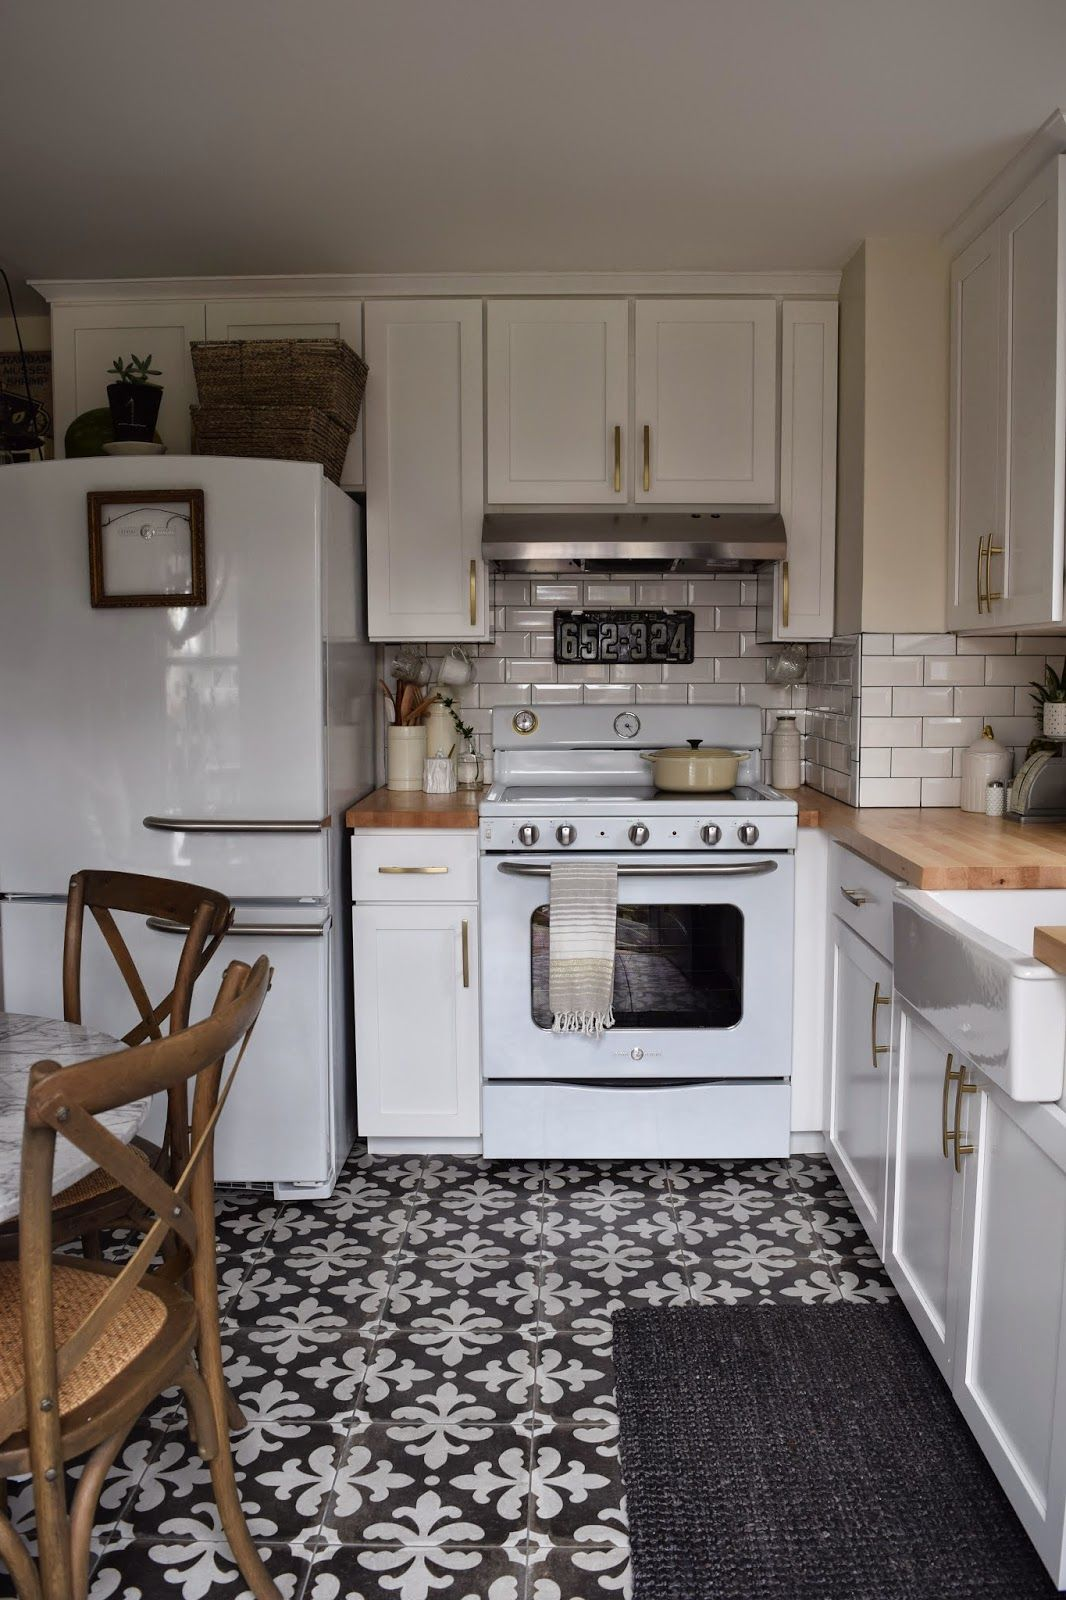 Genial Retro Kitchen Appliances. White Kitchen Cabinets. Beveled Subway Tile.  Patterned Floor Tile.